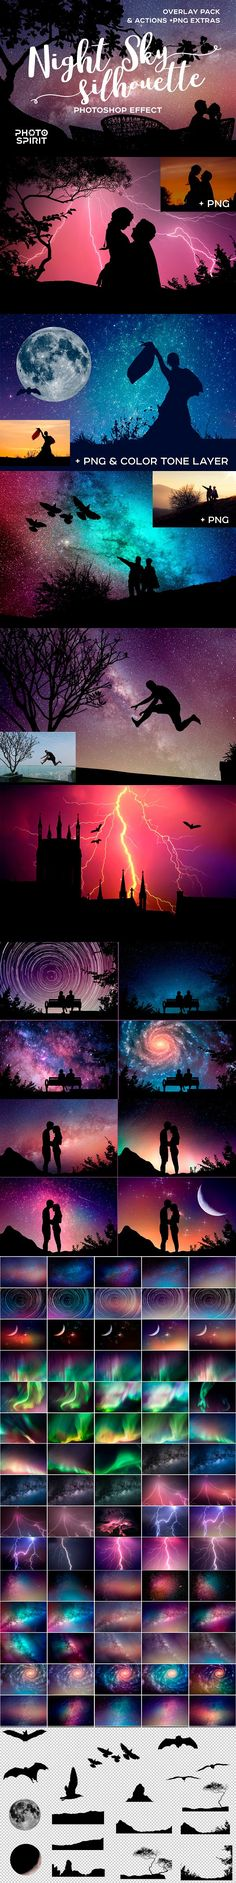 Night Sky Silhouette Actions by PhotoSpirit on @creativemarket